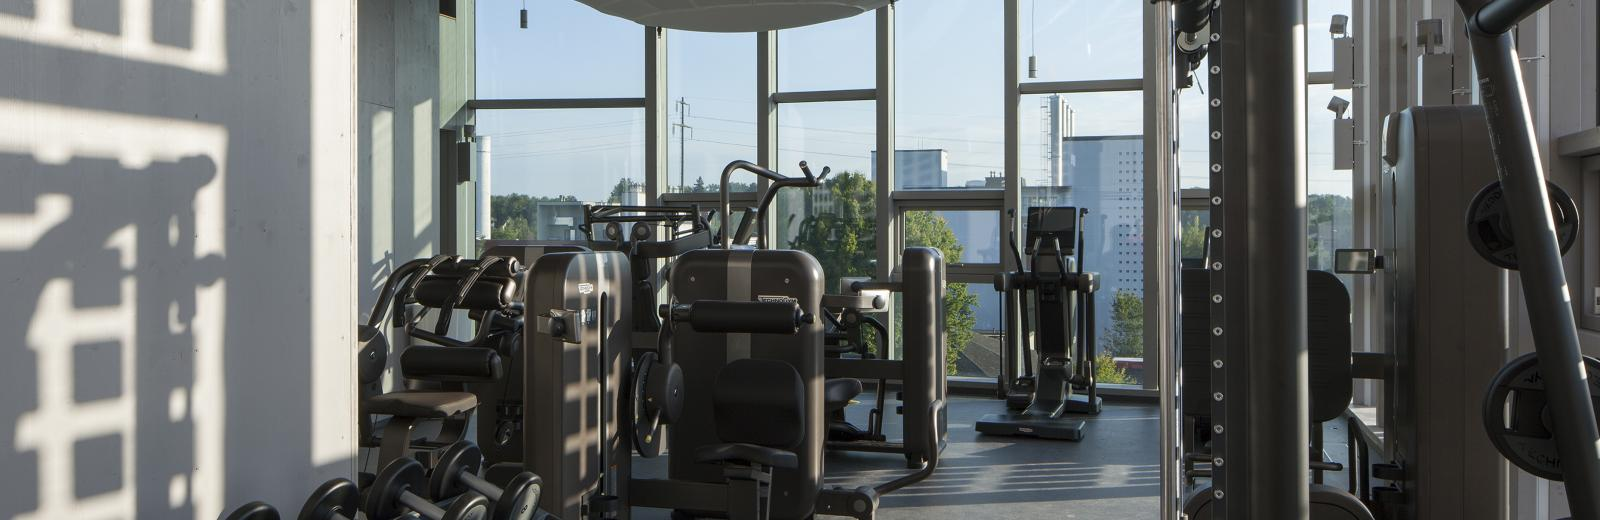 NEST Solar Fitness & Wellness unit © Empa / Reinhard Zimmermann